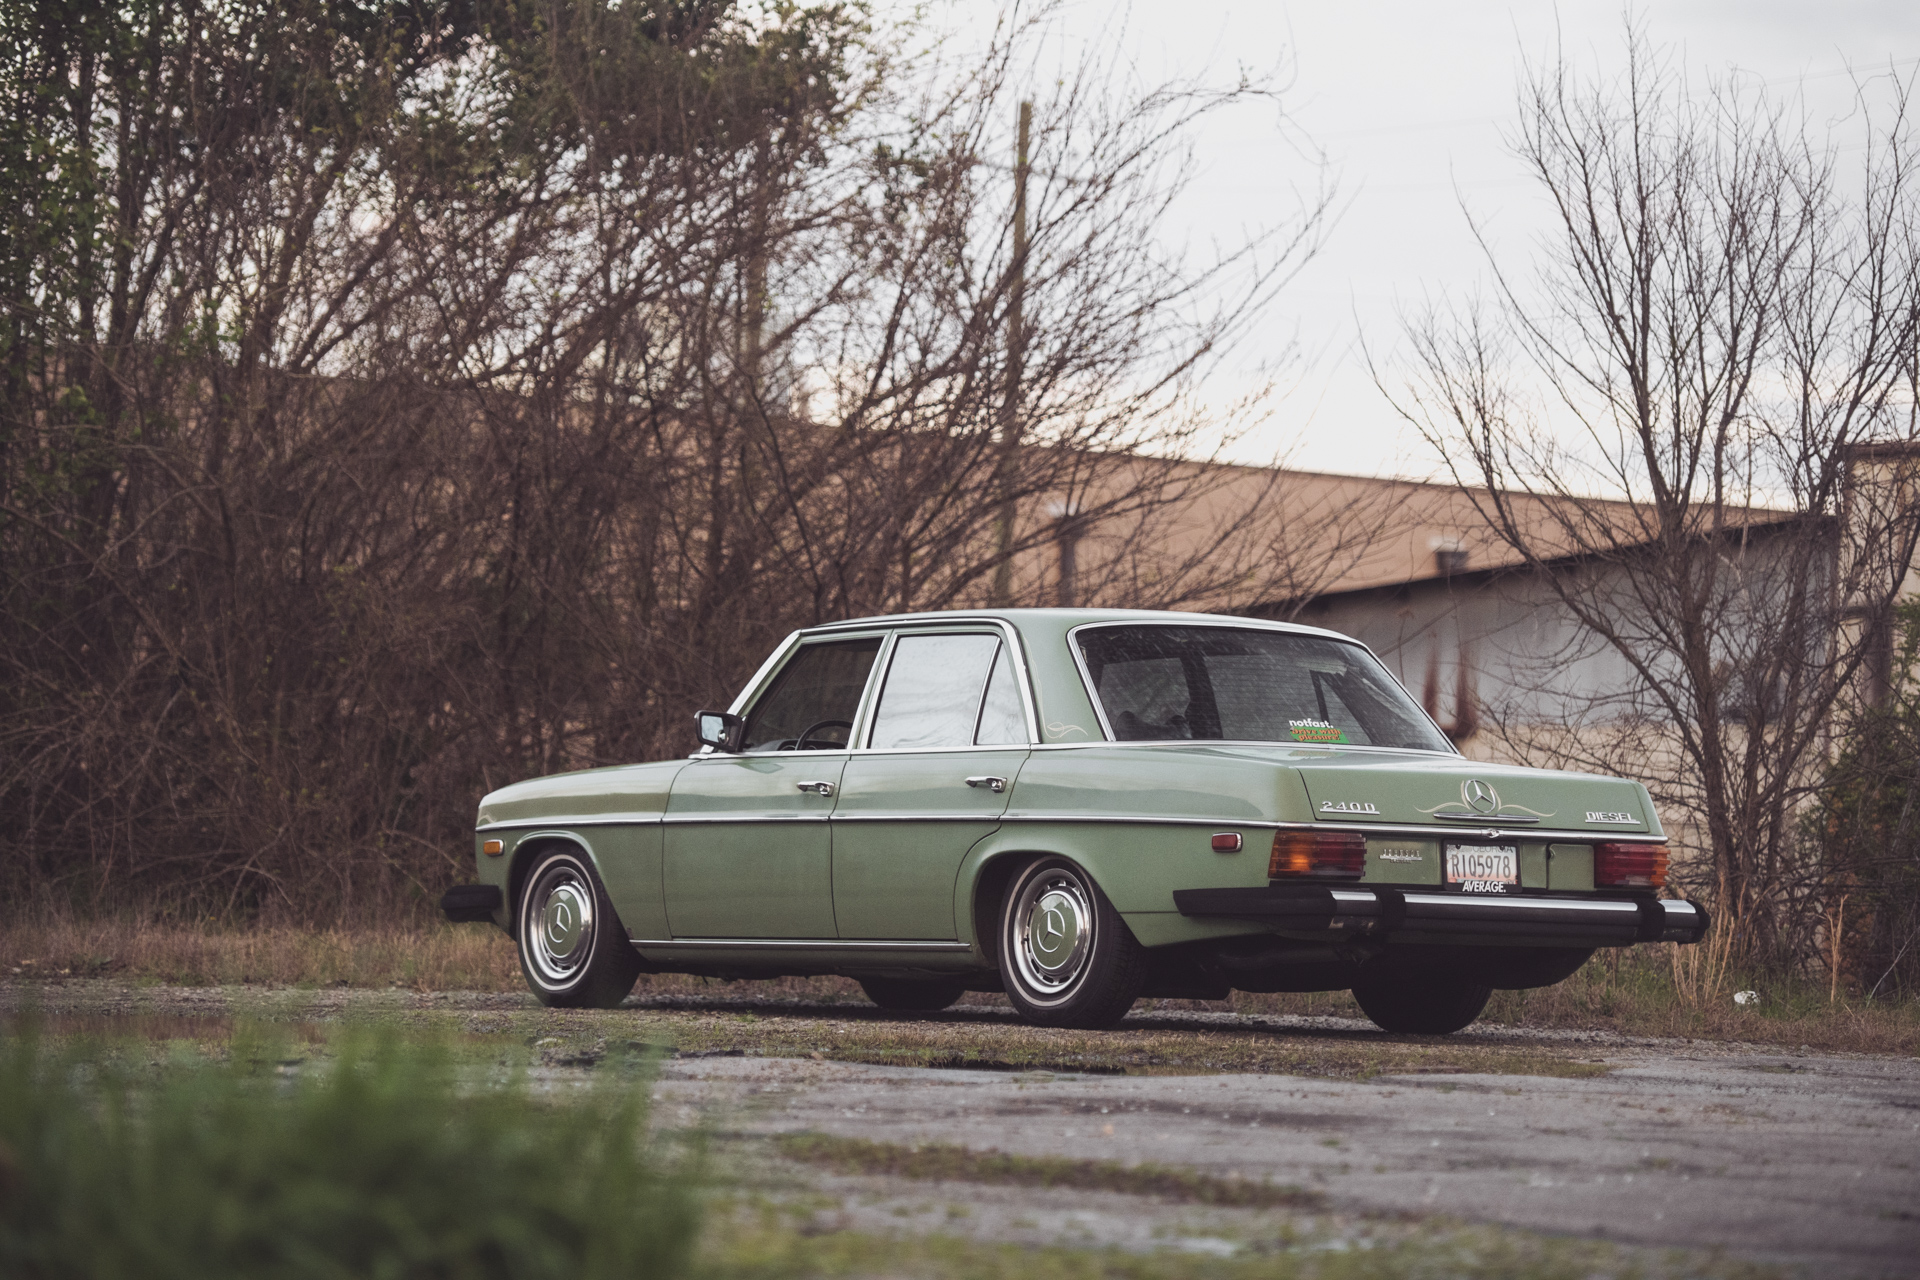 Dead Reliable - Lee Purvis' 1974 Mercedes 240DMacon, GA | March 2019